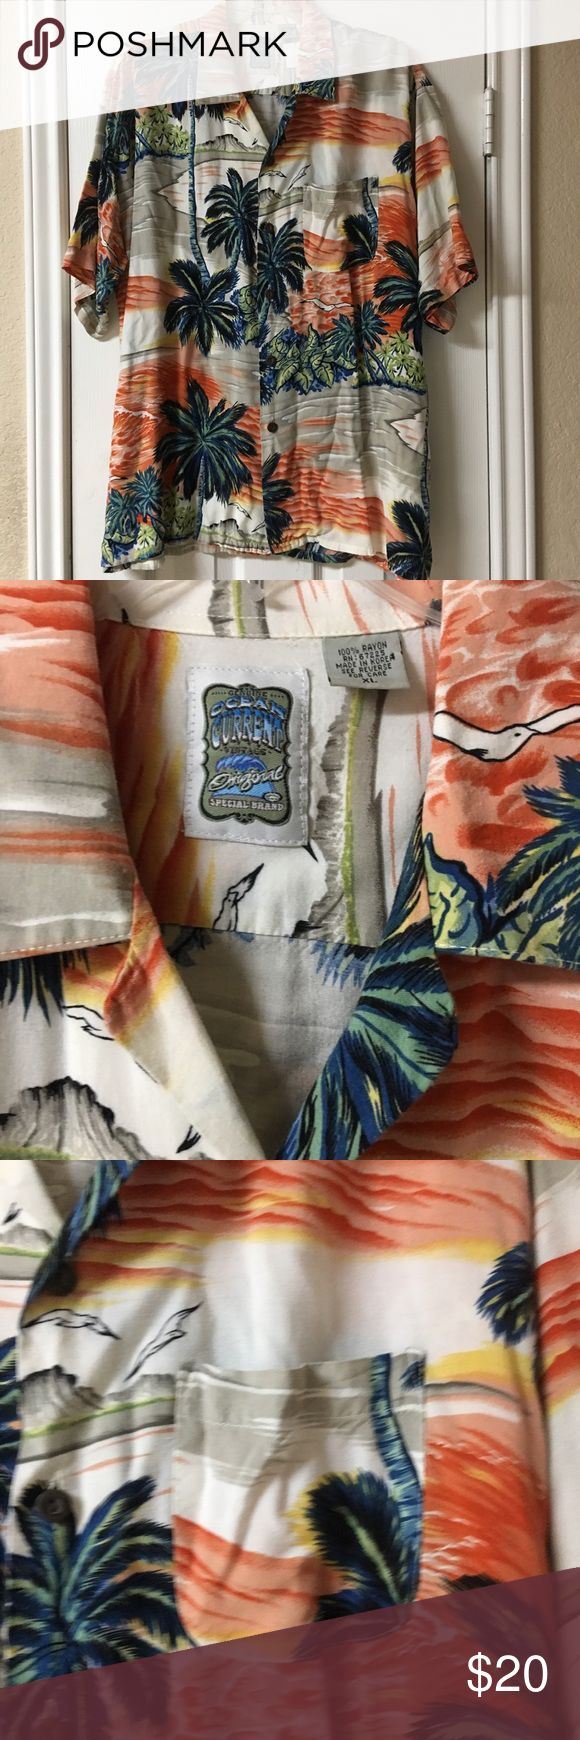 Vintage Ocean Current Hawaiian Button Down Shirt Amazing, Vintage Ocean Current Hawaiian Button Down Shirt. Good condition. 100% Rayon. Cream background with orange, yellow, greys and greens. Beautiful print of the tropics. One front pocket. Retro, vacation, summer, beach, playa, spring. Ocean Current Shirts Casual Button Down Shirts